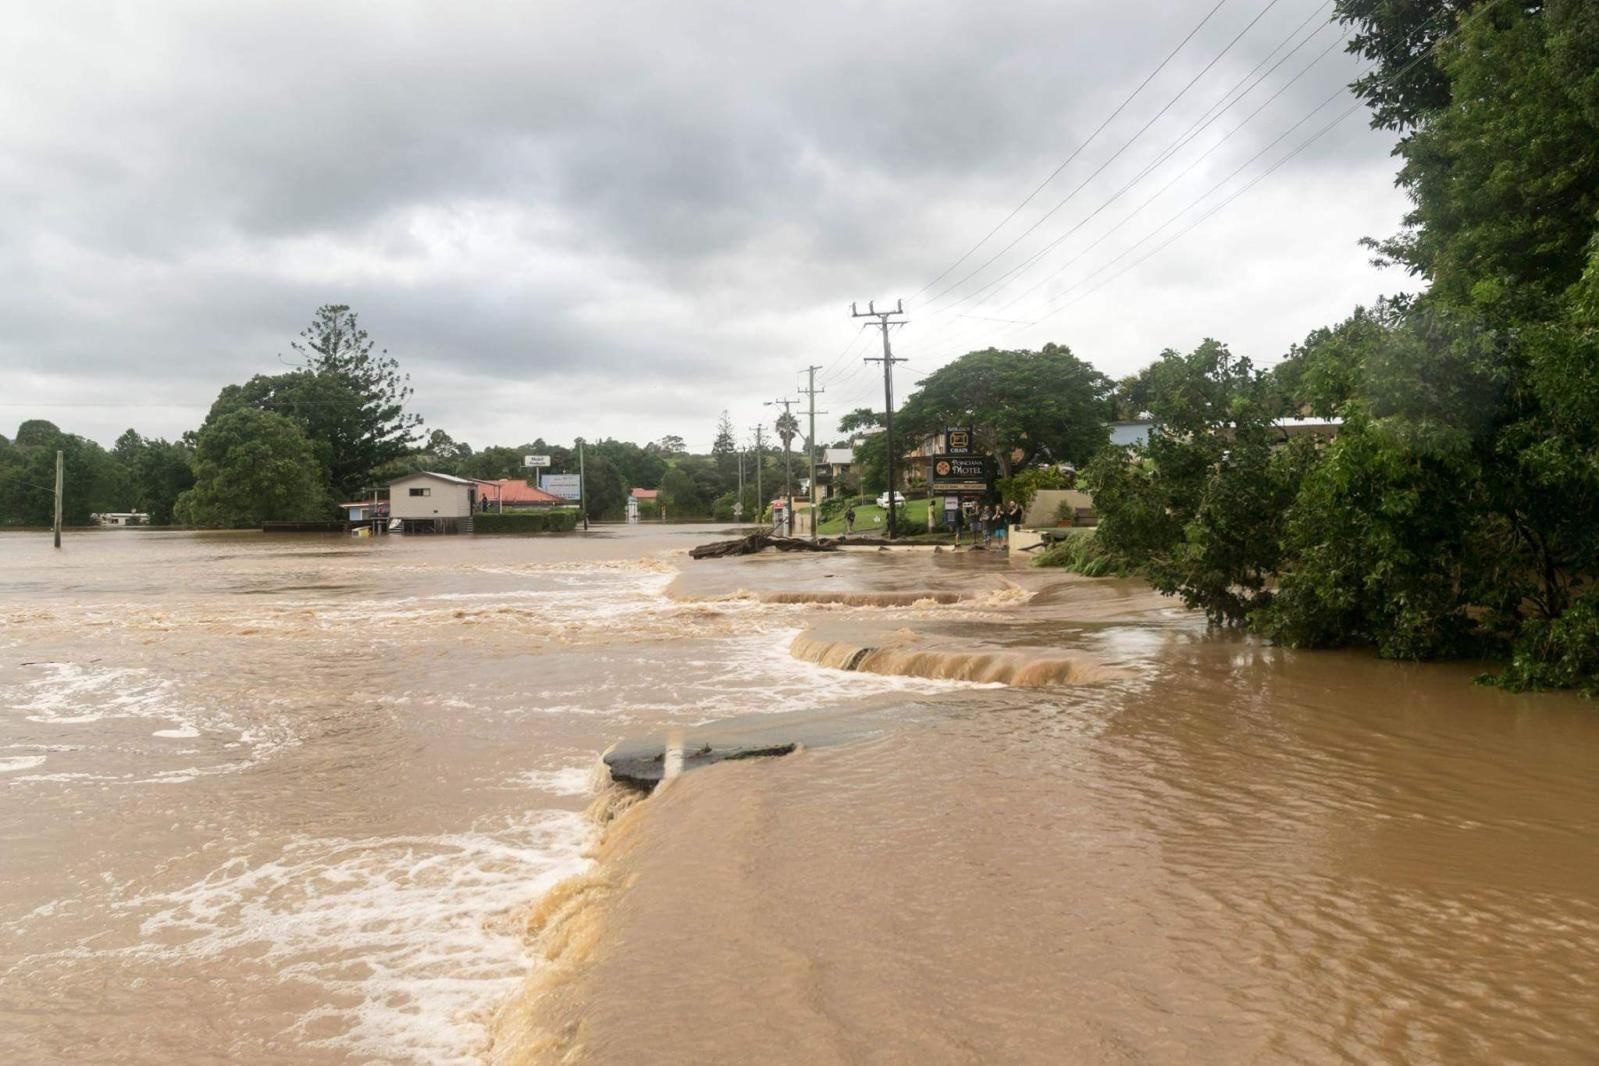 NSW floods: Torrential rain hits Lismore, Northern Rivers region after Cyclone Debbie